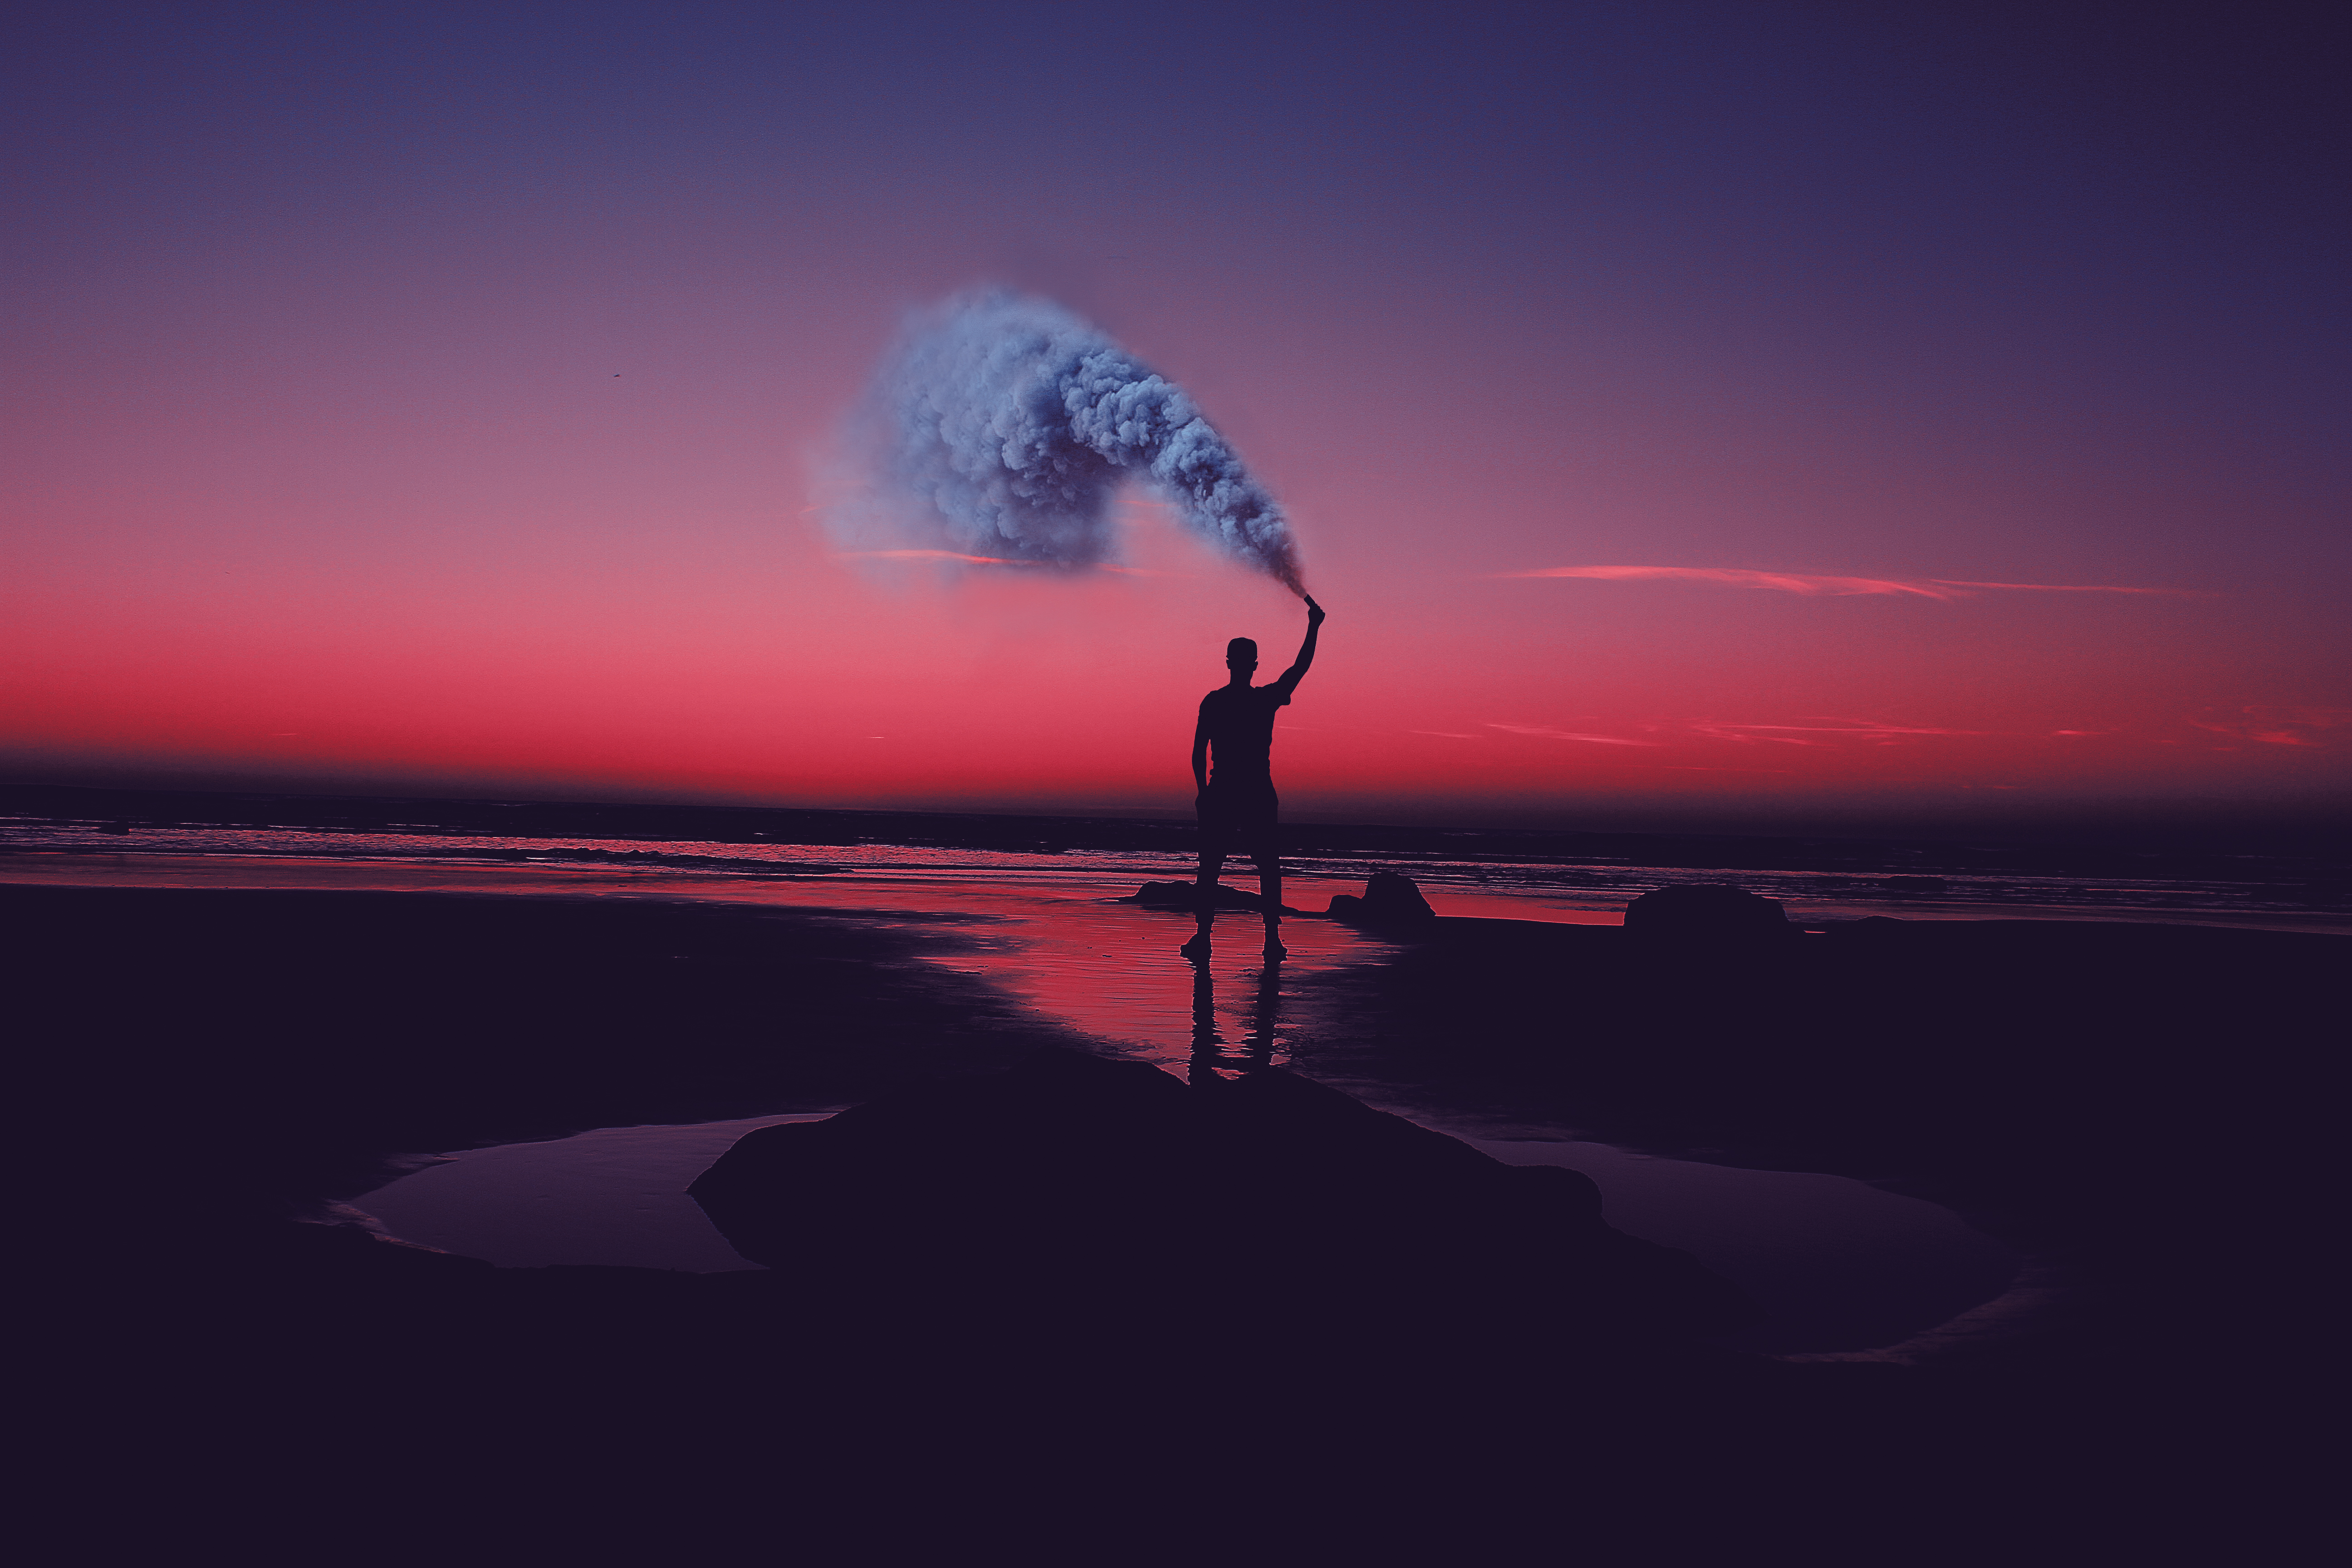 A Silhouette Of A Man Holding A Smoke On A Deserted Beach With A